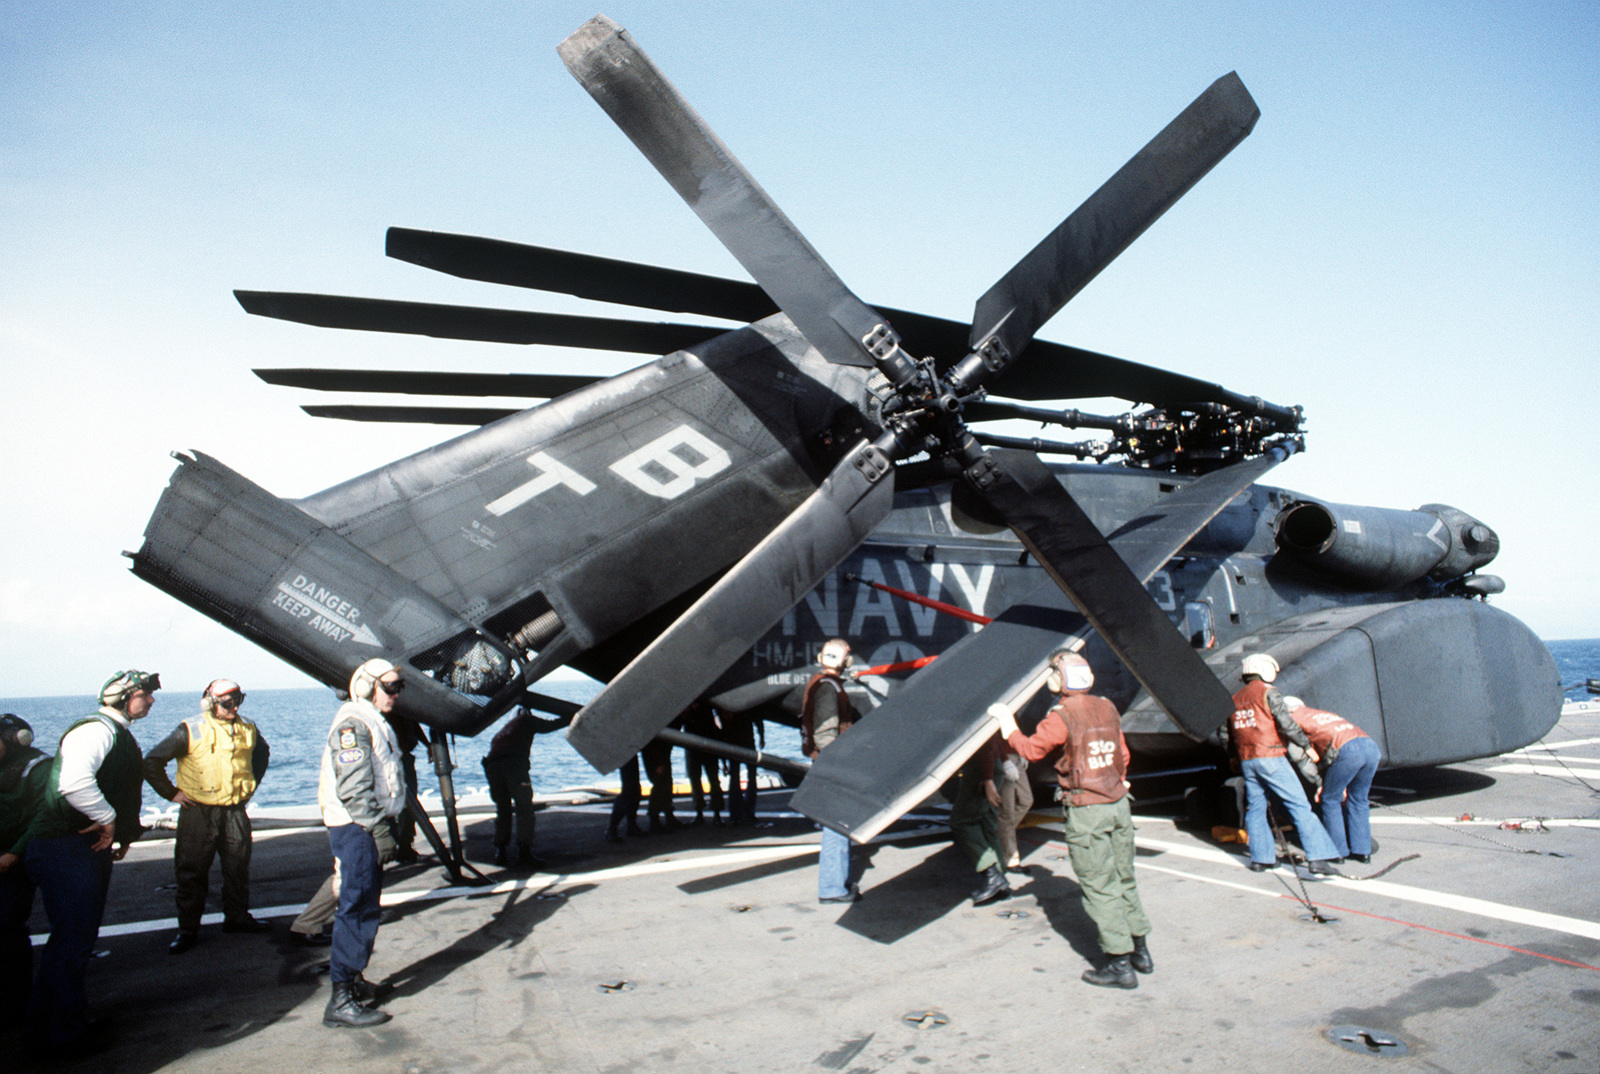 Members of Helicopter Mine Countermeasures Squadron 15 (HM-15) secure one of their MH-53E Sea Dragon helicopters on the flight deck of the amphibious transport dock USS DULUTH (LPD-6) during MARCOT '93, a joint U.S. - Canadian fleet exercise